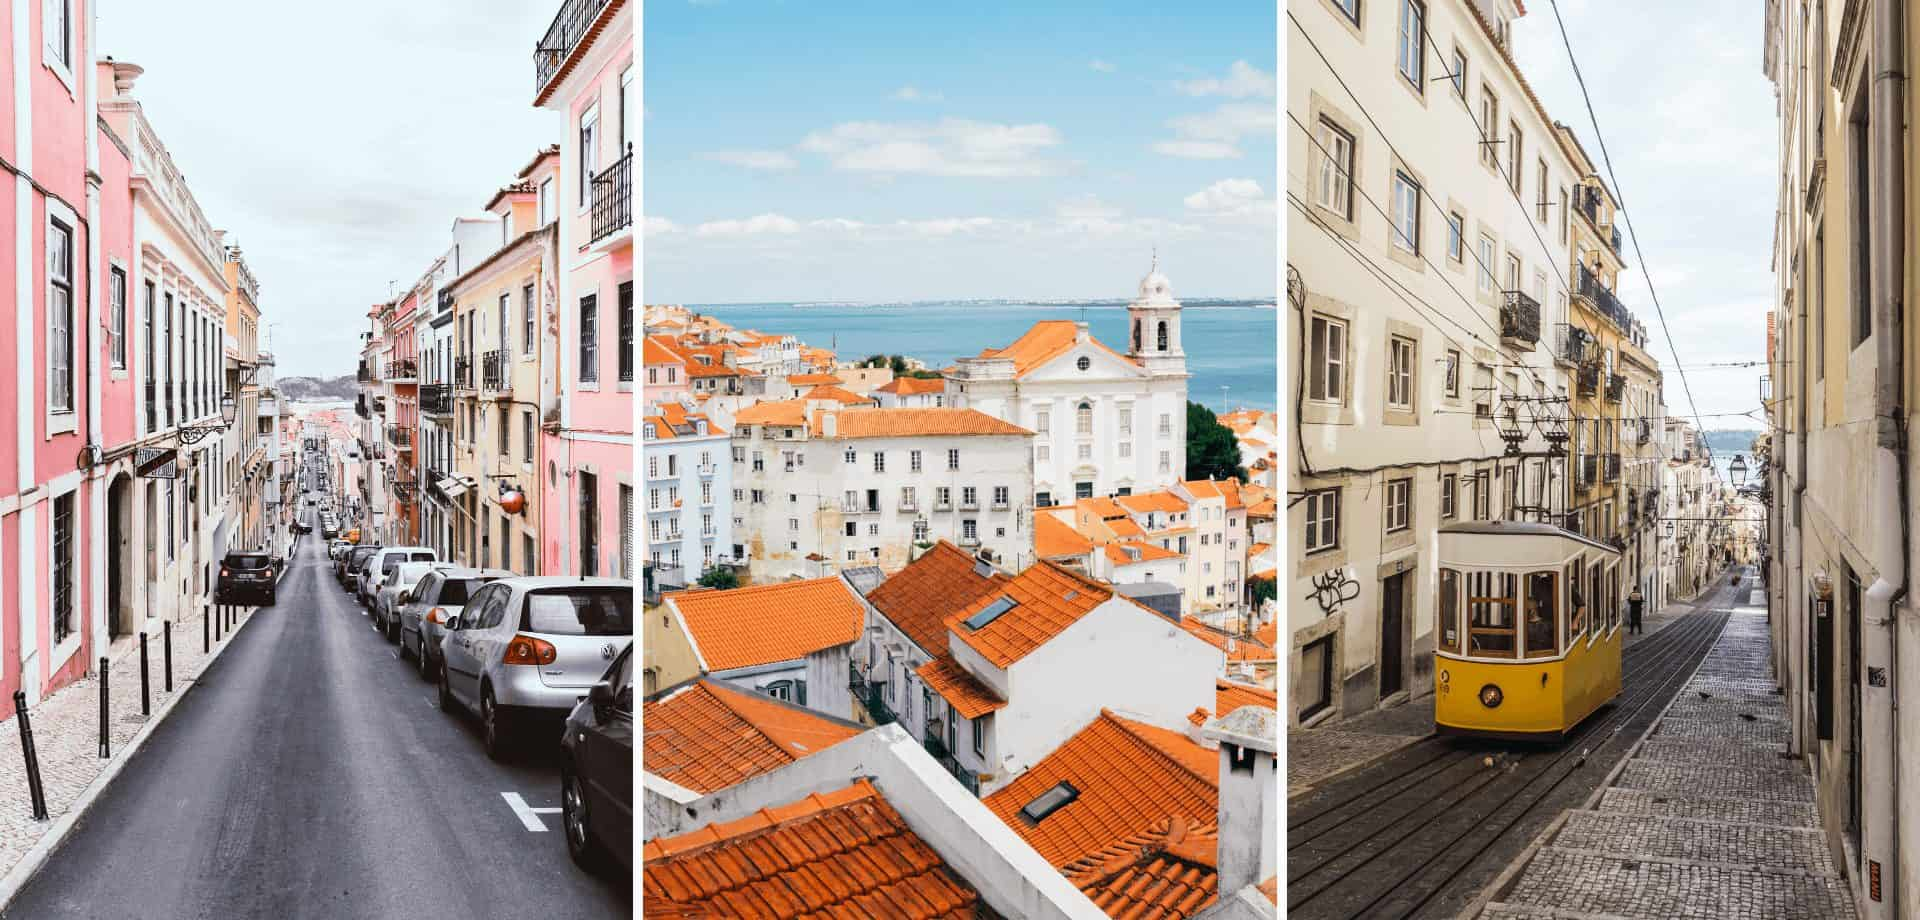 Heading to Portugal on your own and looking for some fun things to do? This Lisbon solo travel guide is exactly what you need to help plan your trip!